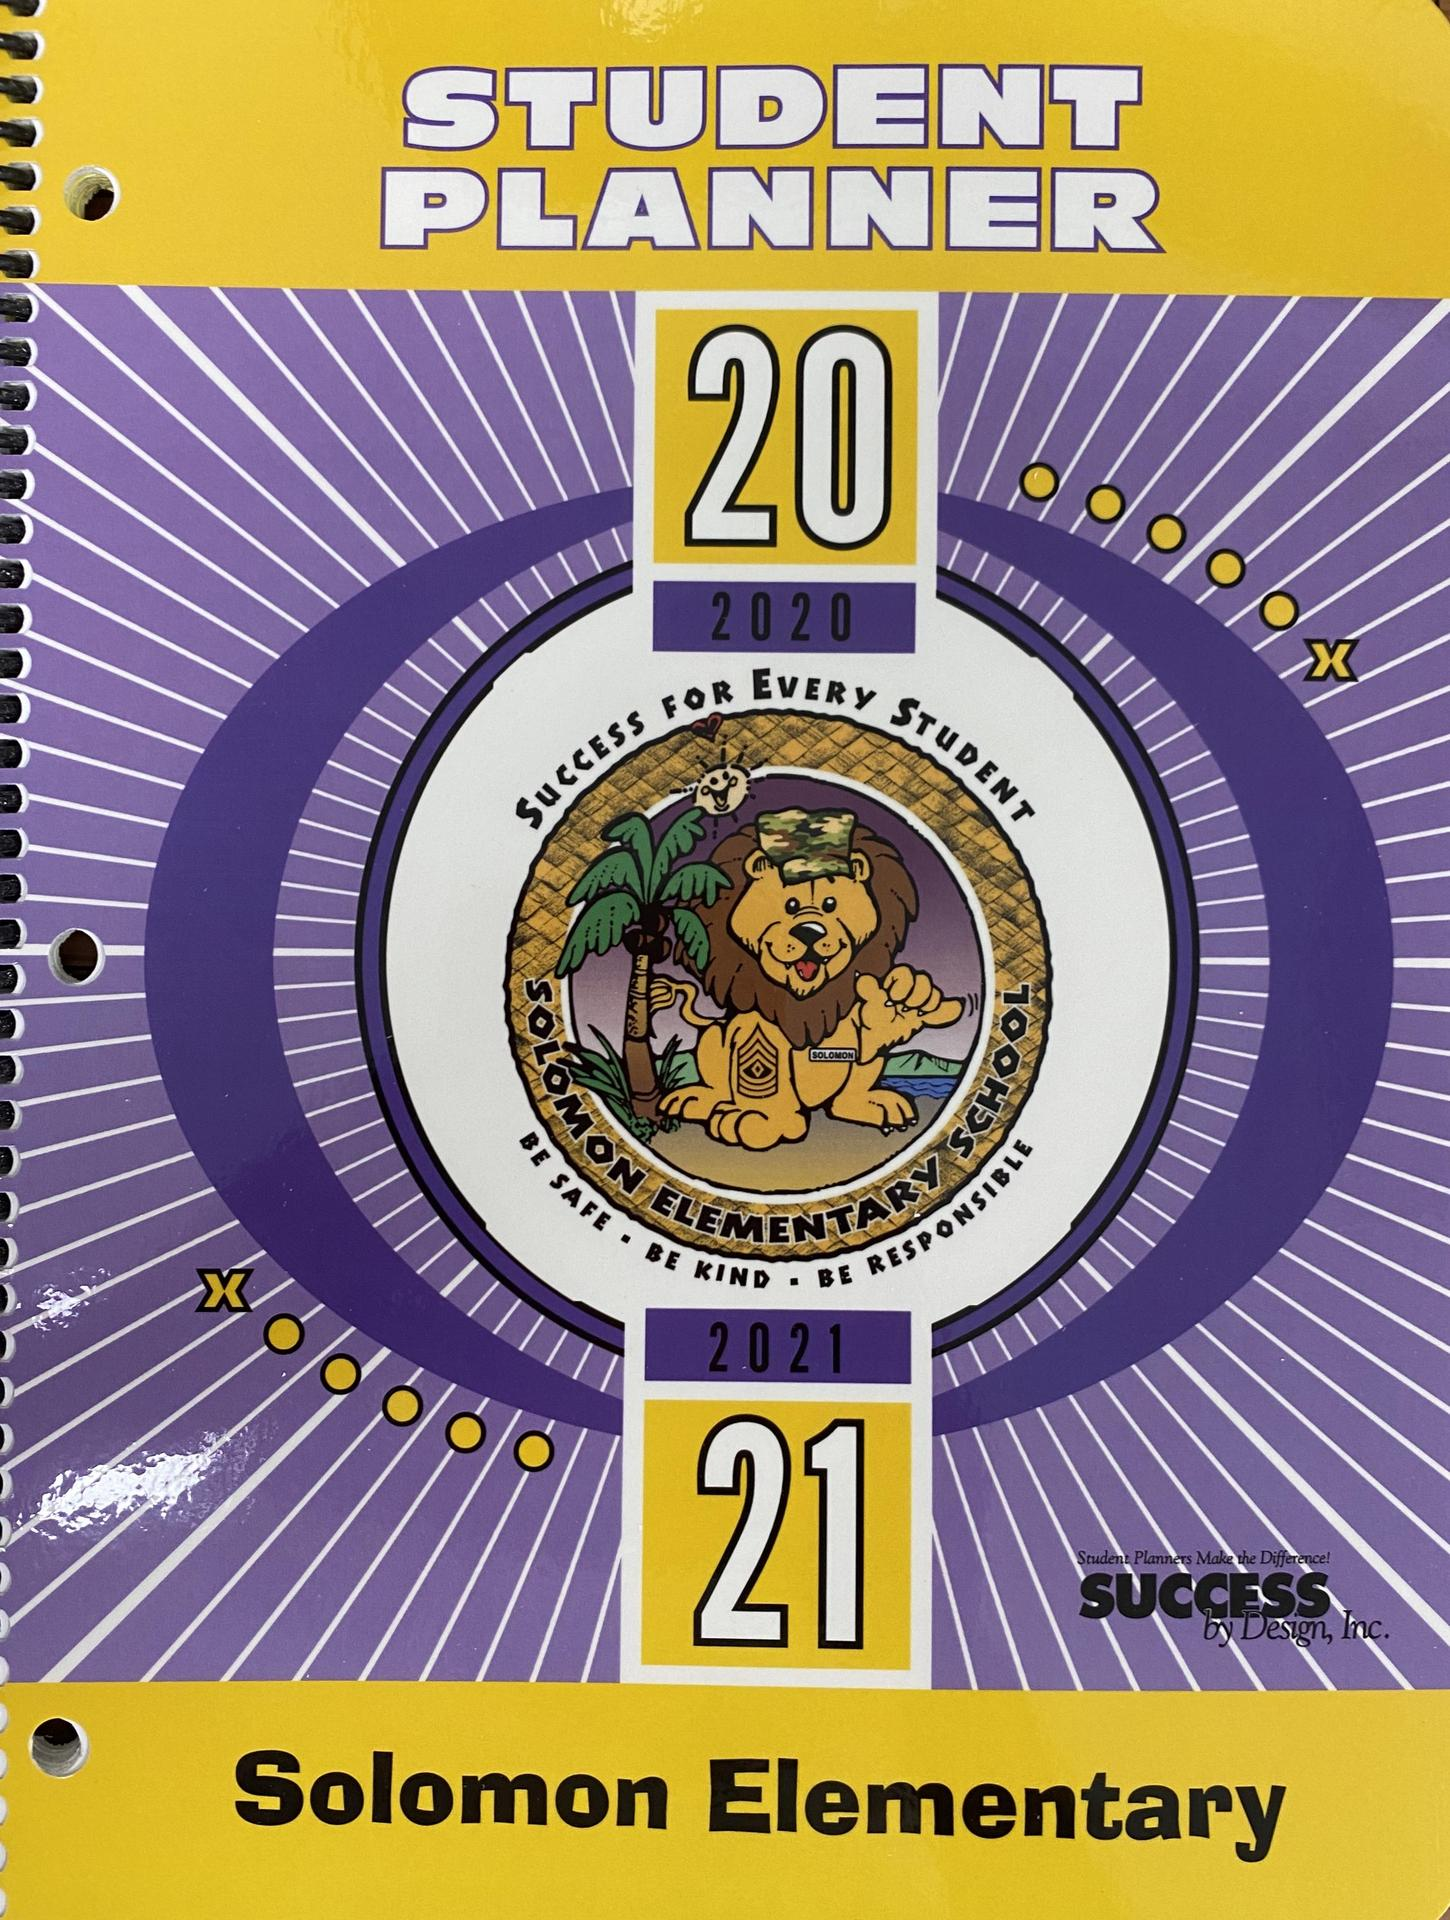 picture of 20-21 planner cover